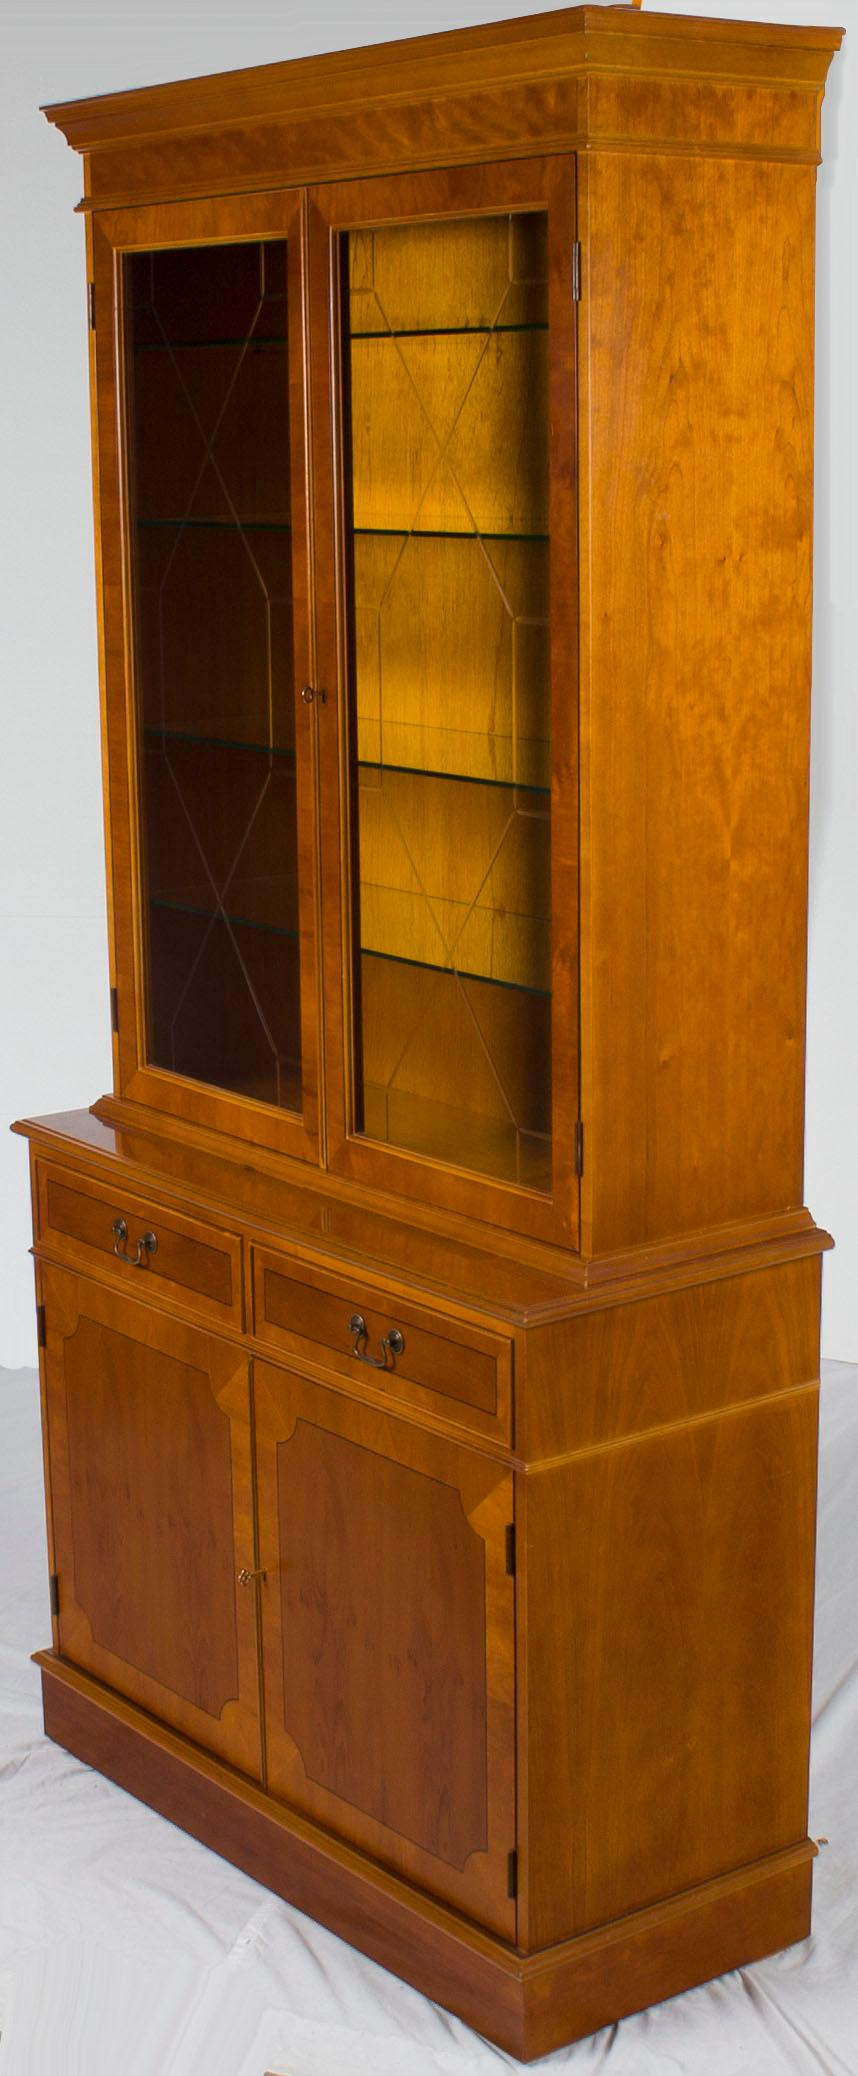 Georgian Yew Wood Two Glass Door Breakfront Small China Cabinet Bookcase  For Sale